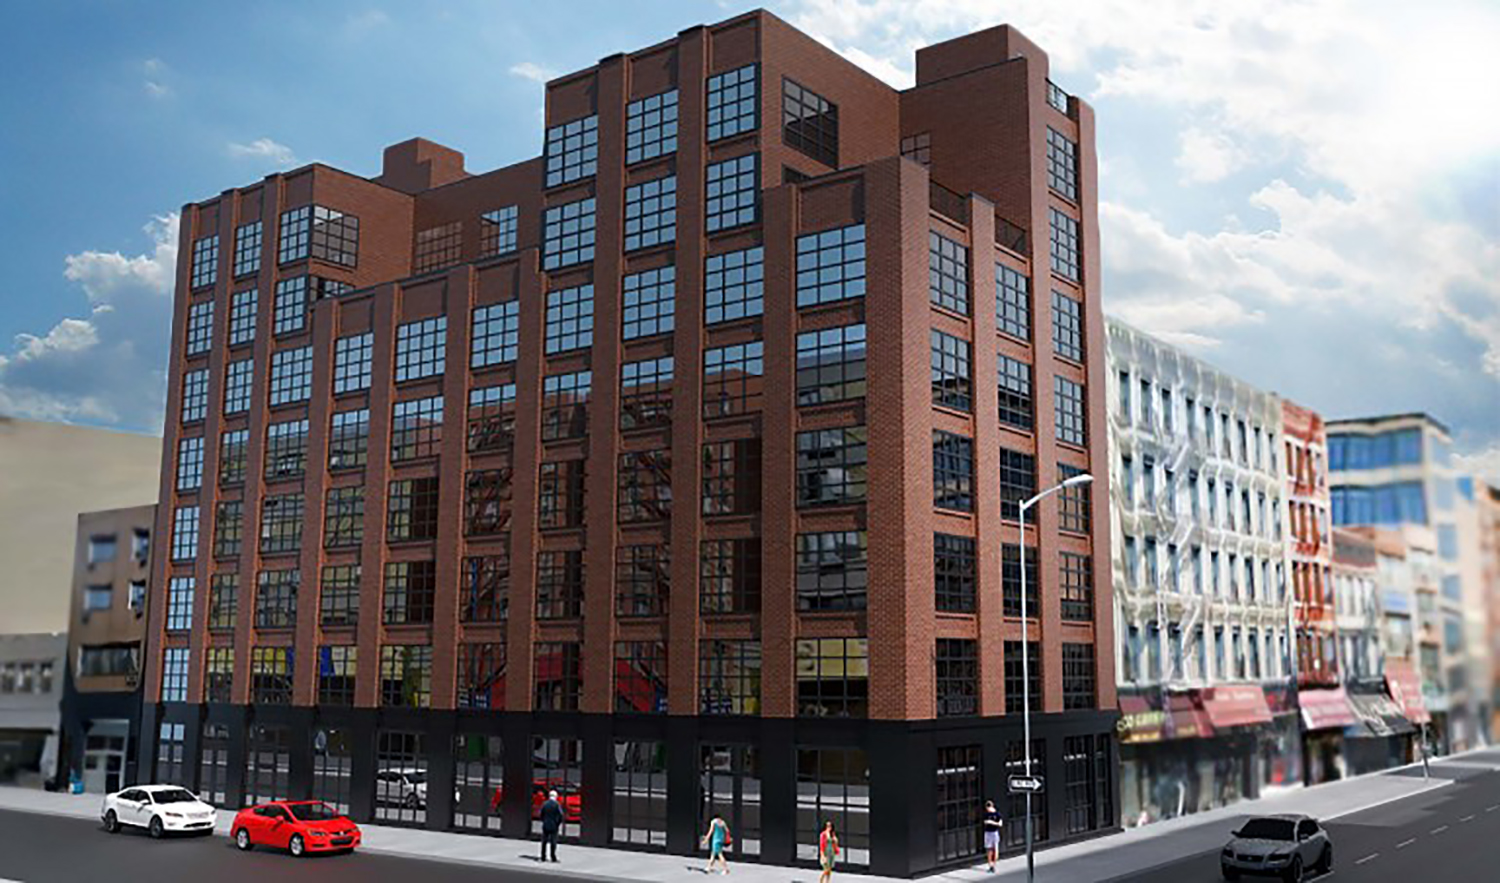 Rendering of 333 Broome Street in LES, NYC